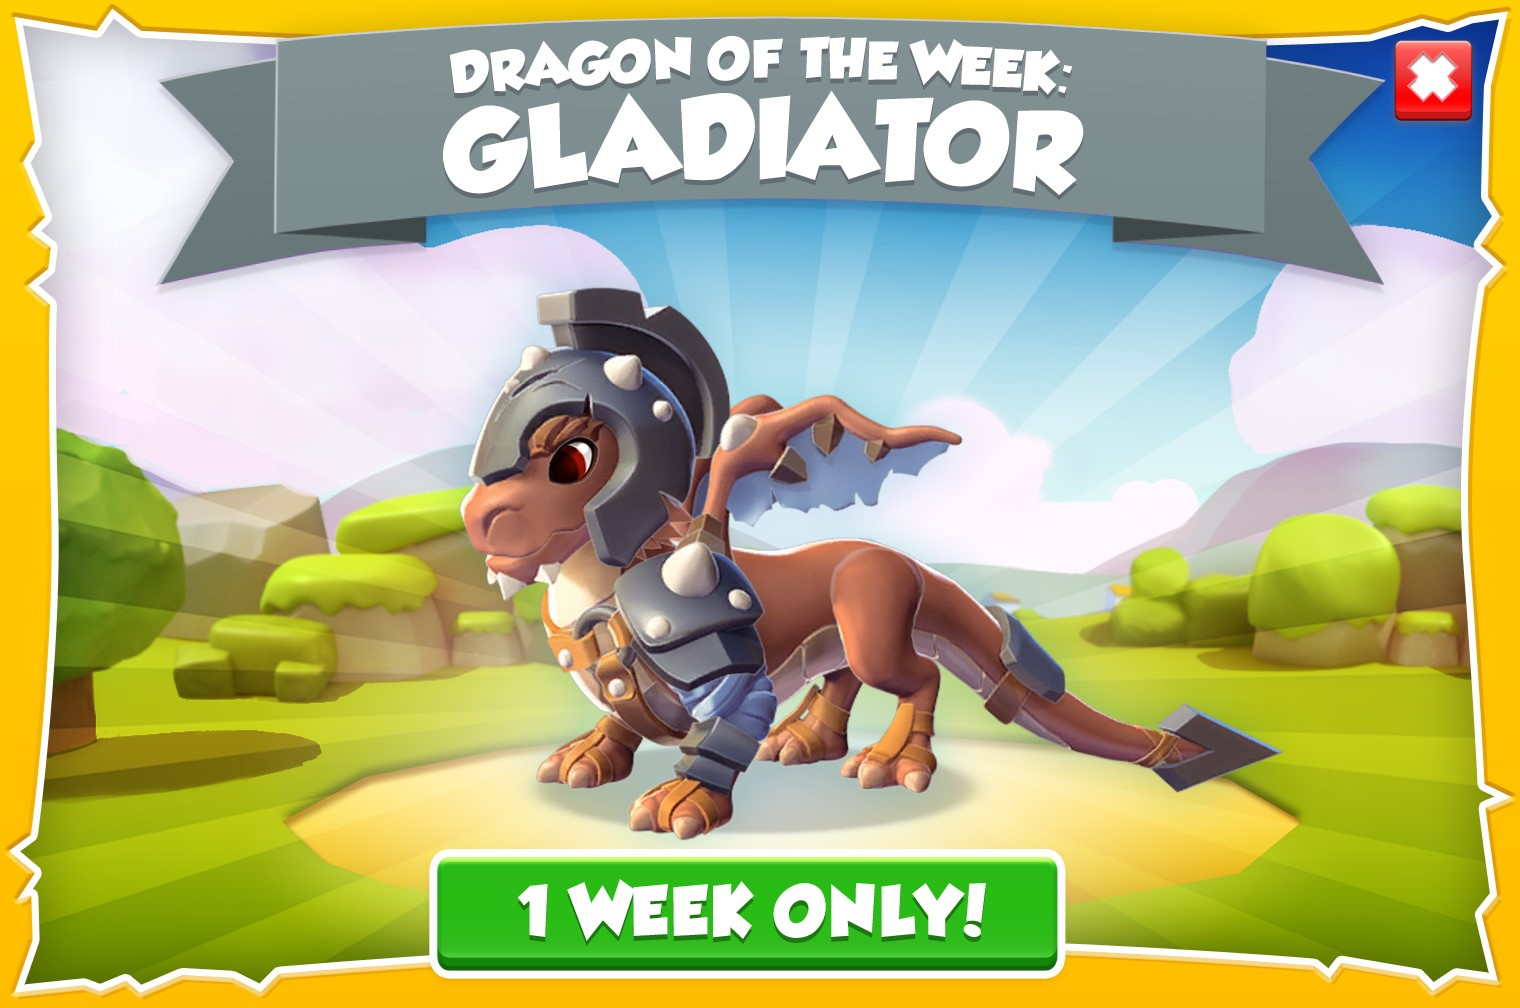 dragon-of-the-week-gladiator-june-22